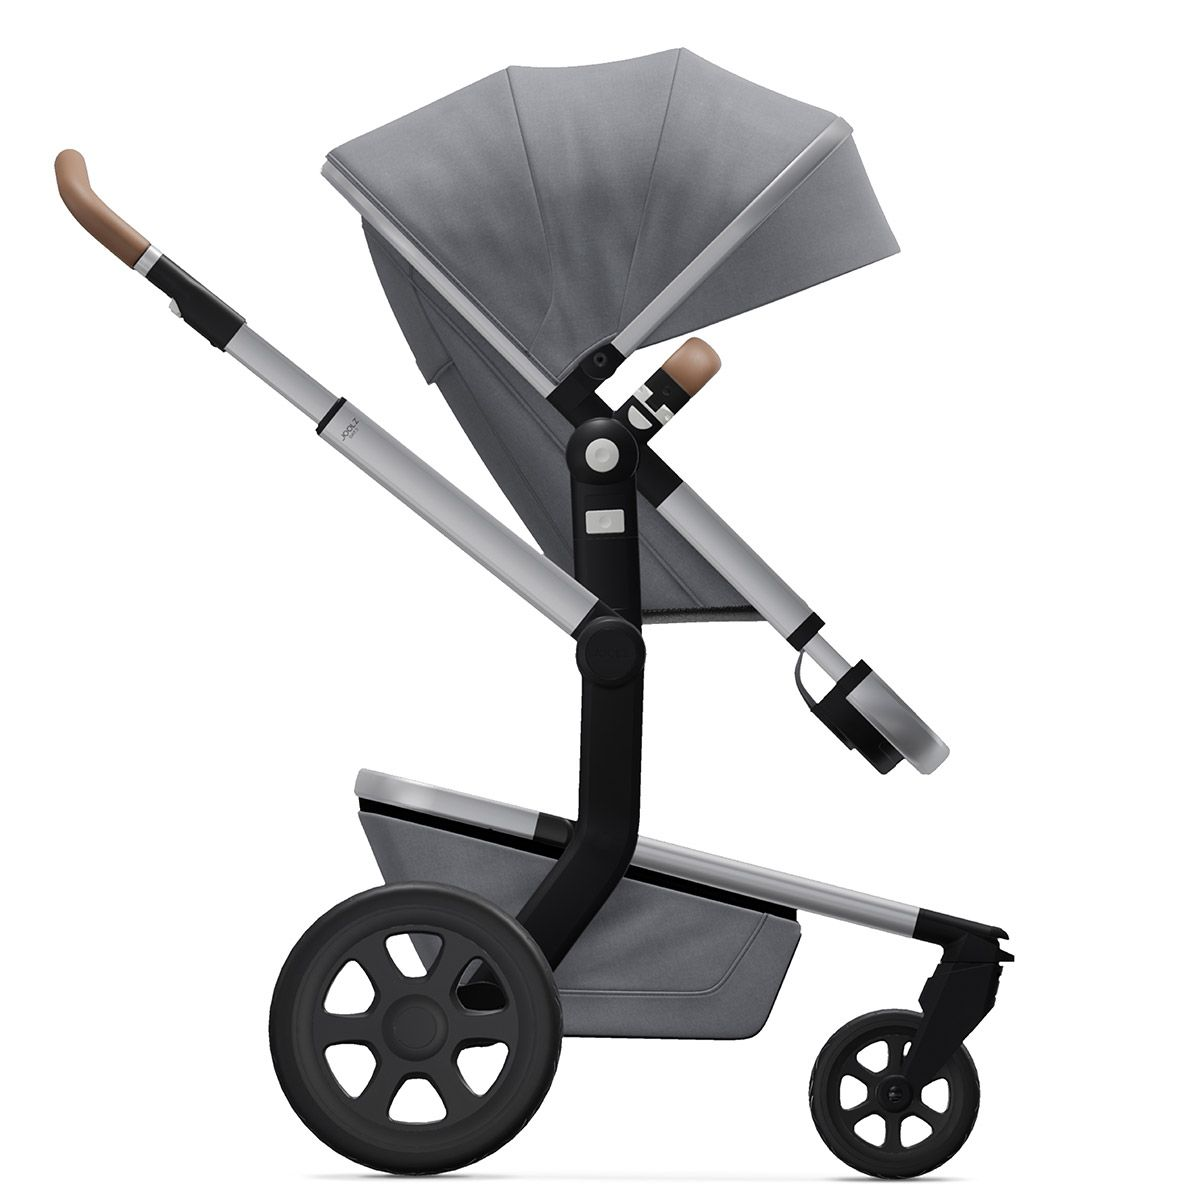 Kinderwagen Easywalker Duo Day3 Stroller Standard Gorgeous Grey Baby Shop Prams